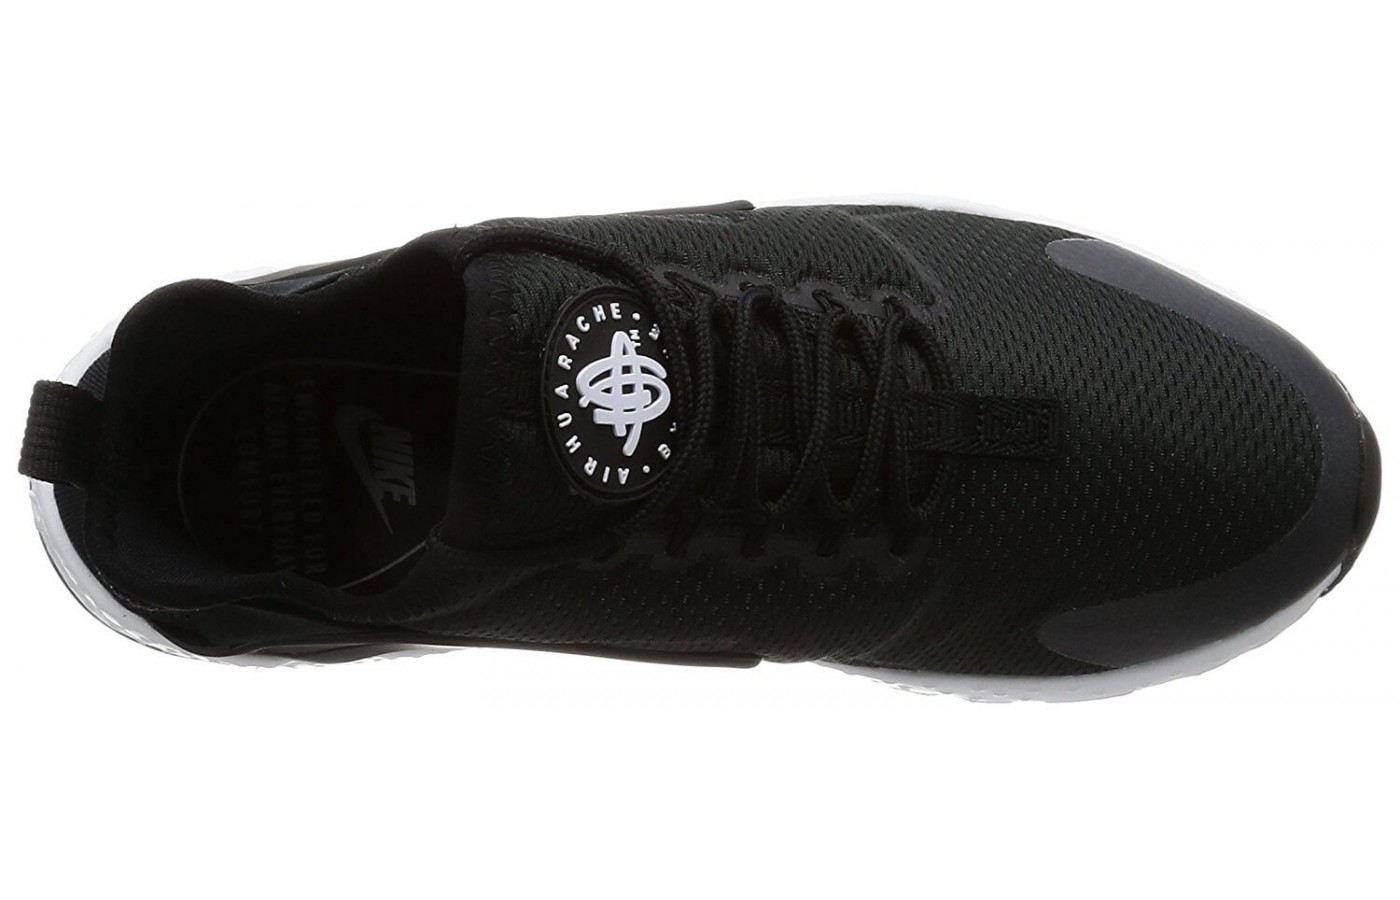 new style 5771c 32860 The upper portion of the Nike Air Huarache Ultra is made from layers of  breathable mesh ...